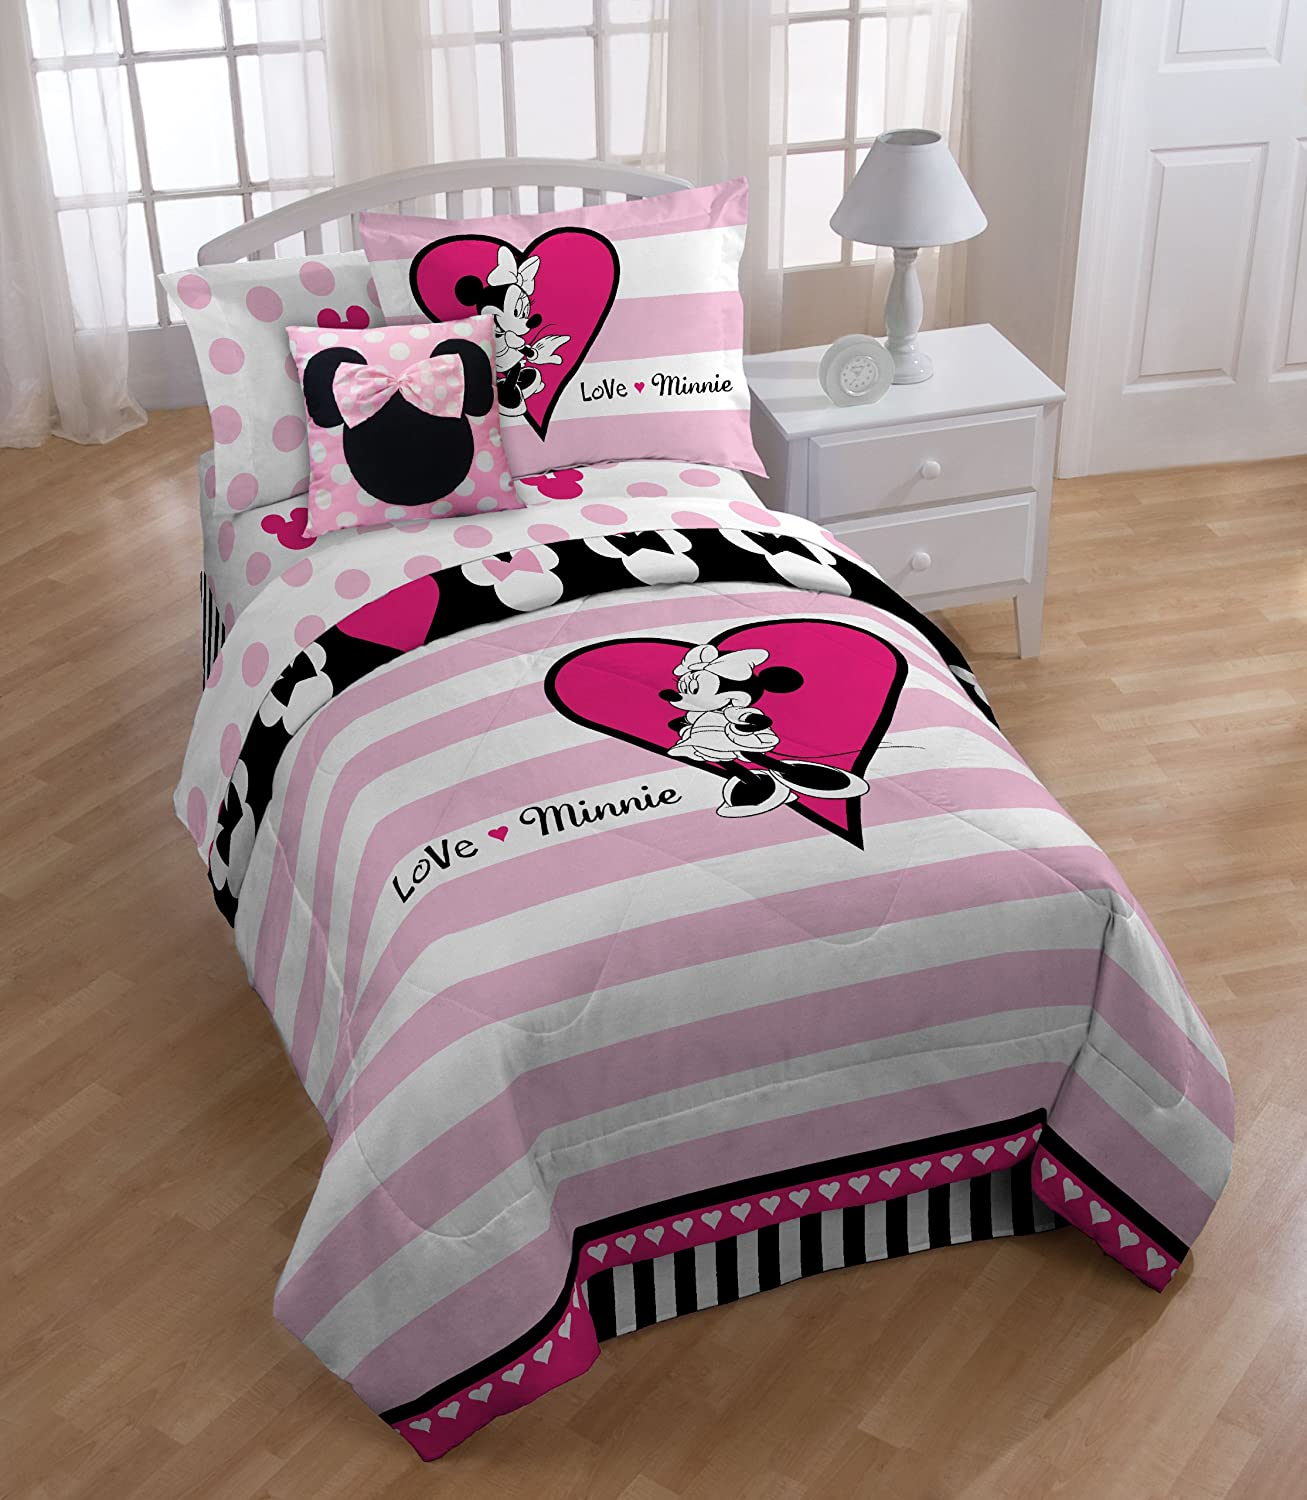 Amazoncom Disney Minnie Mouse Hearts 39 x 75 Twin Sheet Set